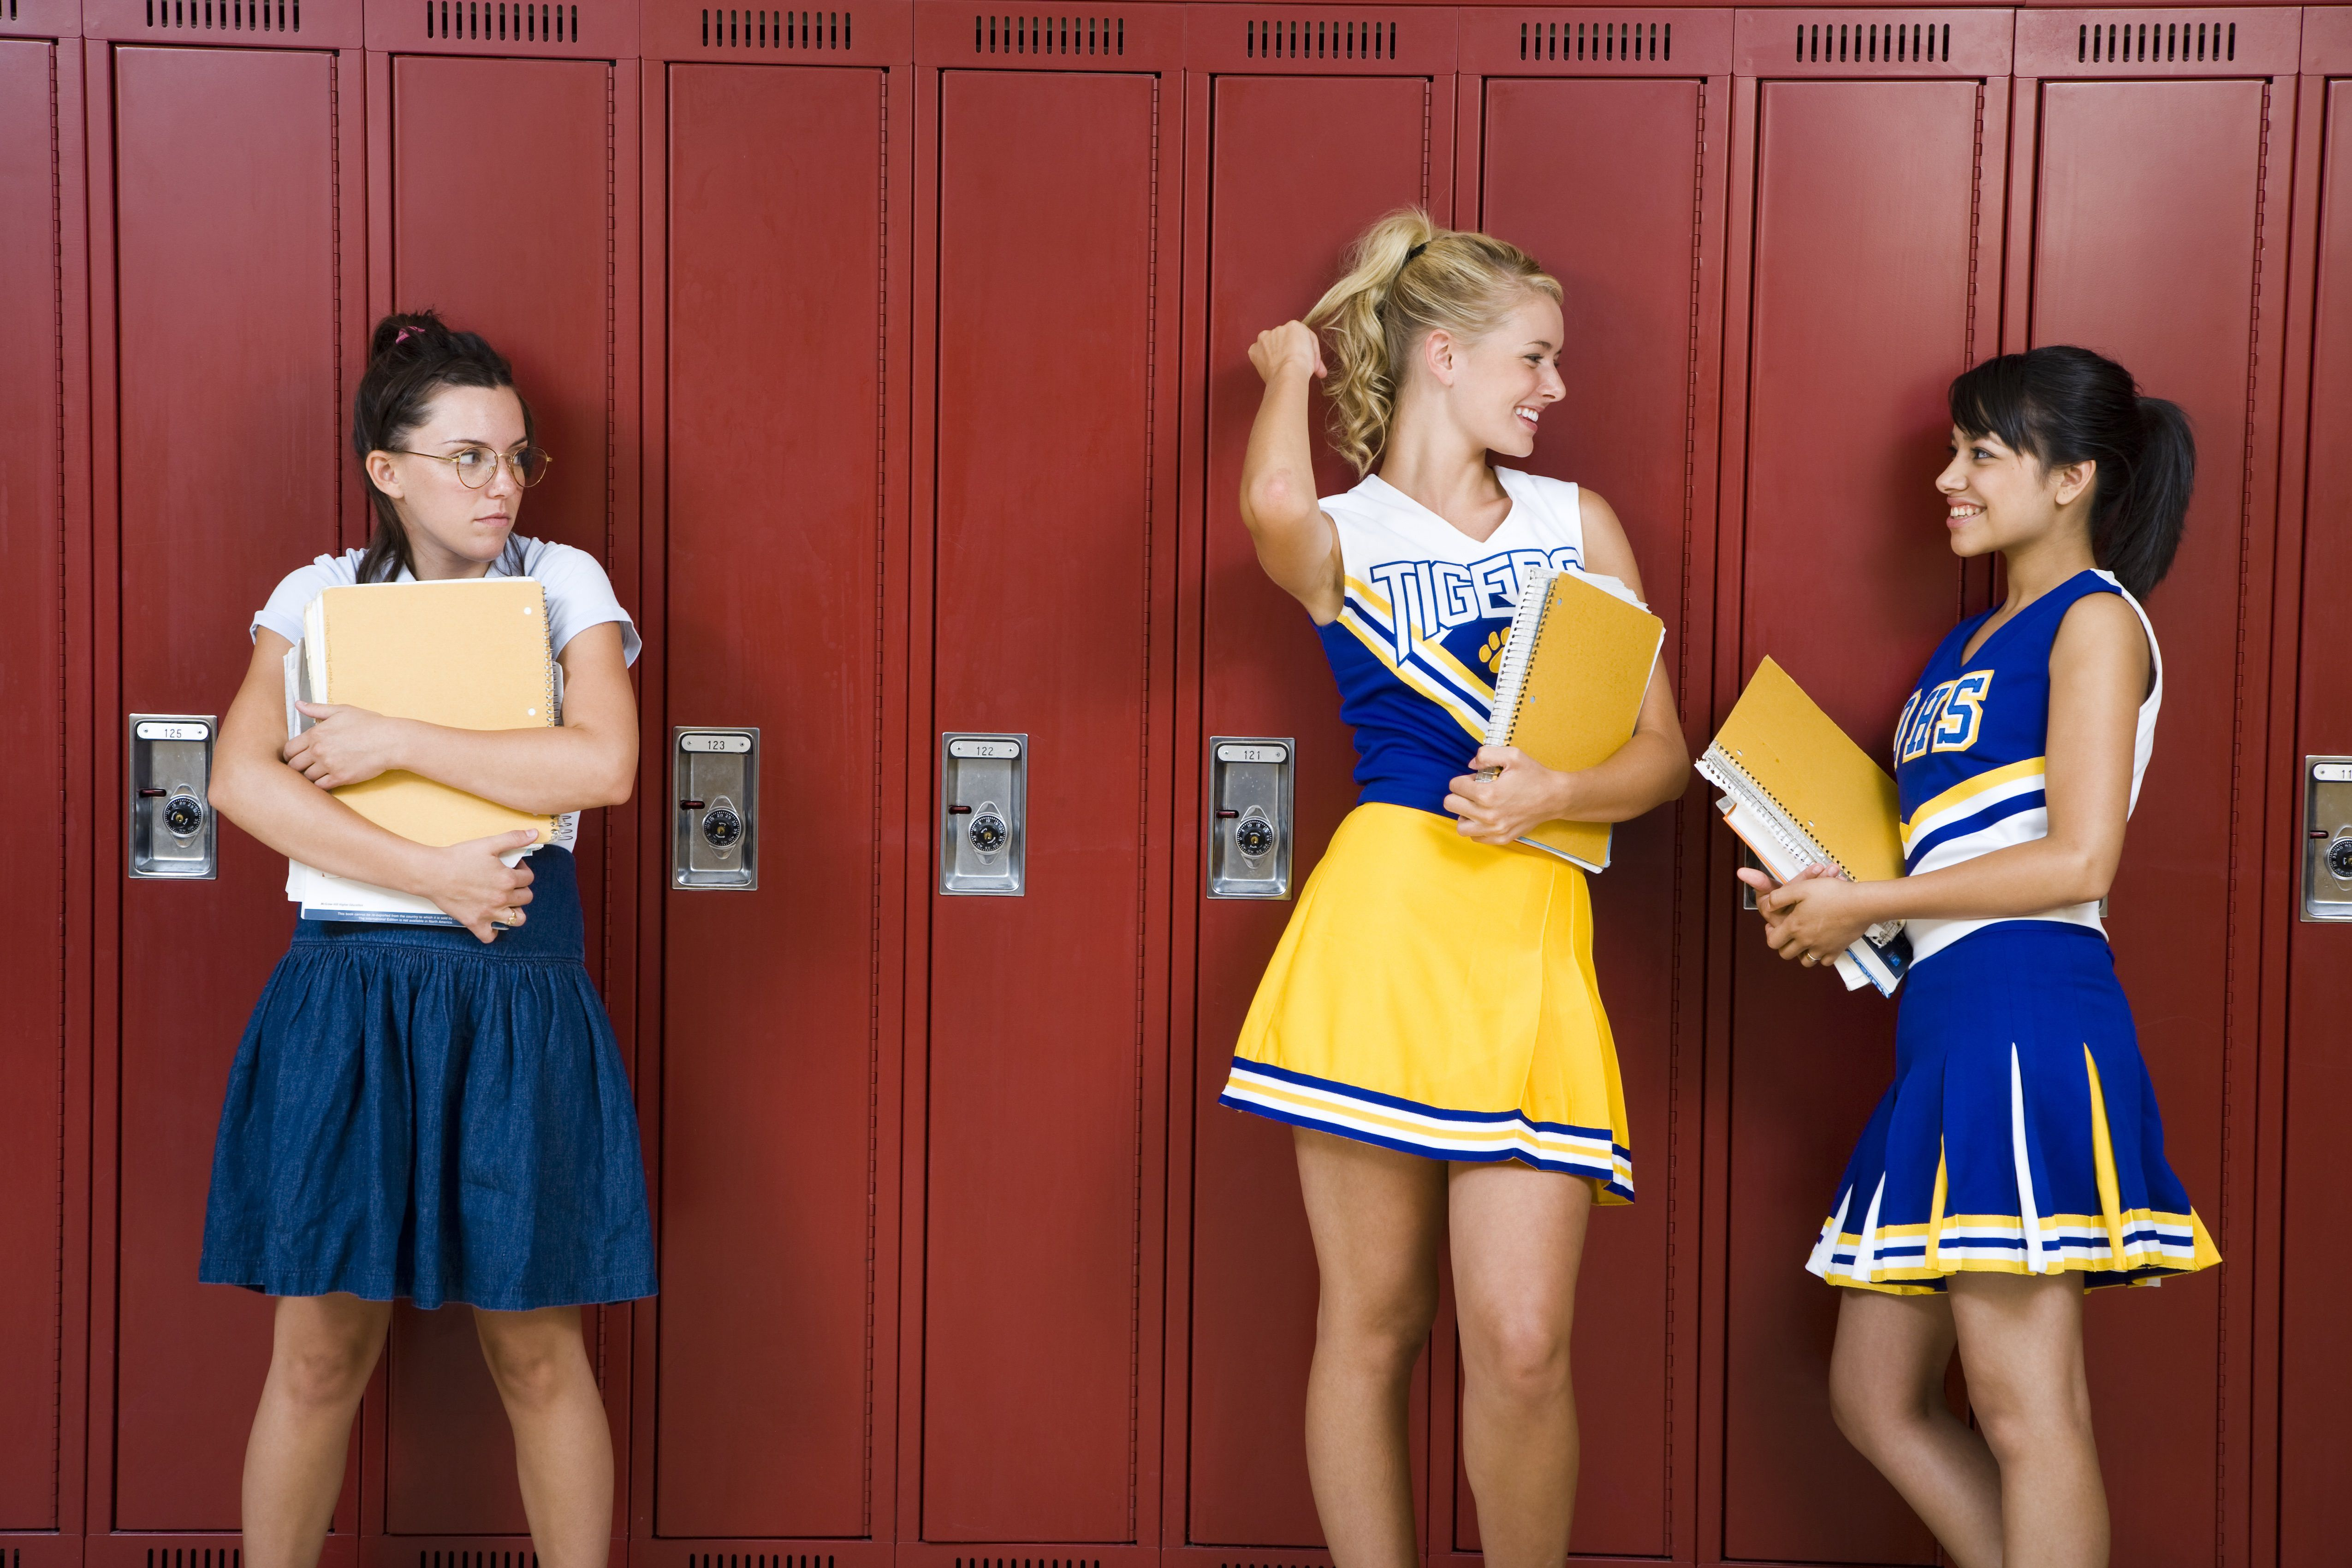 Two High School cheer leaders and a nerd